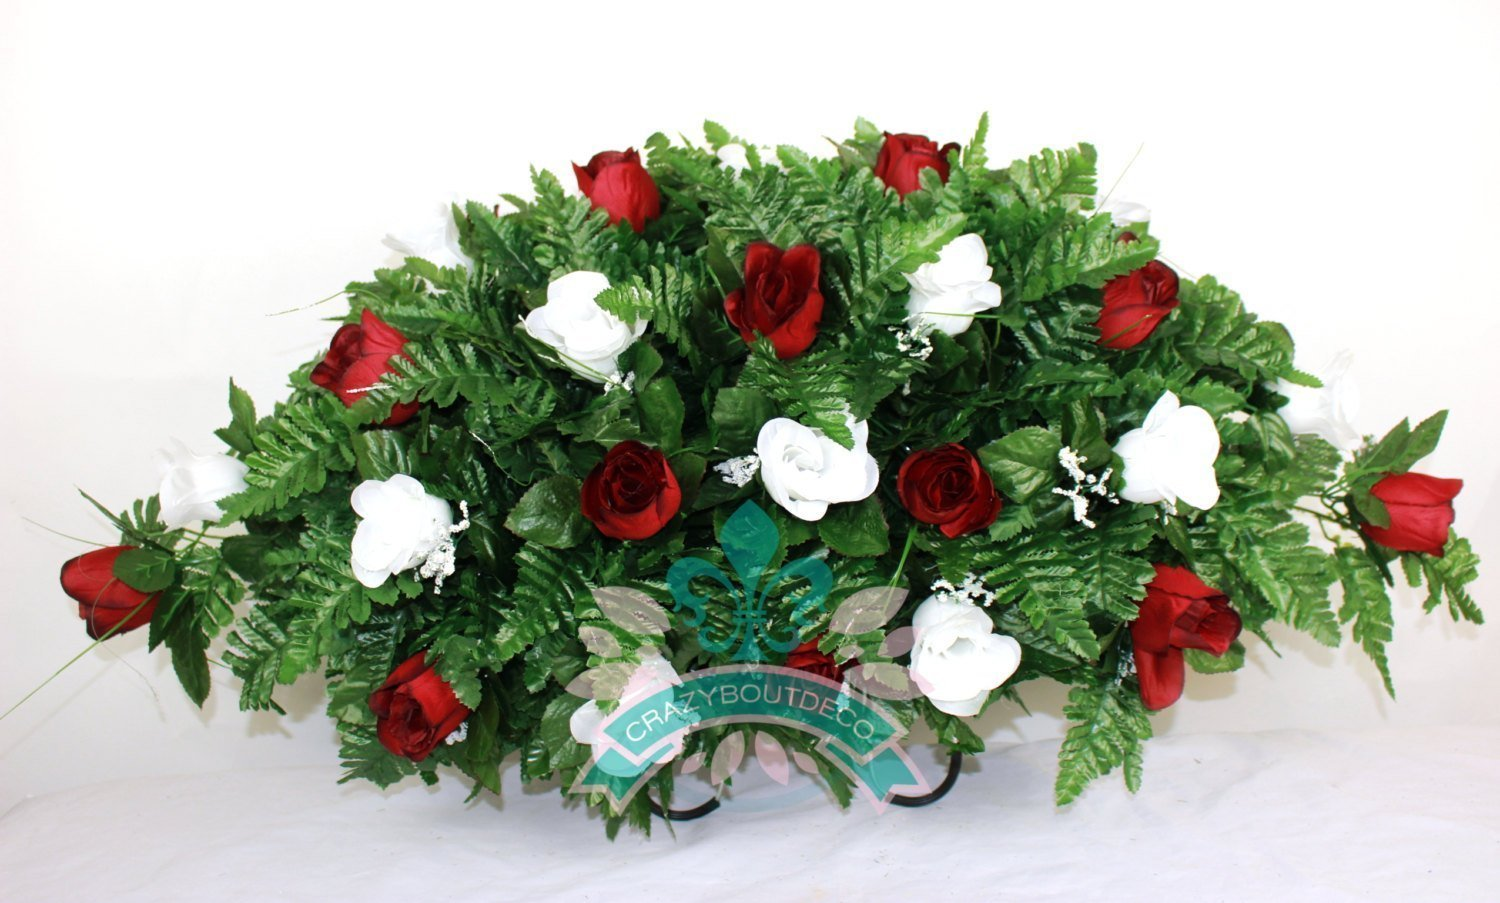 Crazyboutdeco-XL-Red-and-White-Roses-Silk-Flower-Cemetery-Tombstone-Saddle-Arrangement